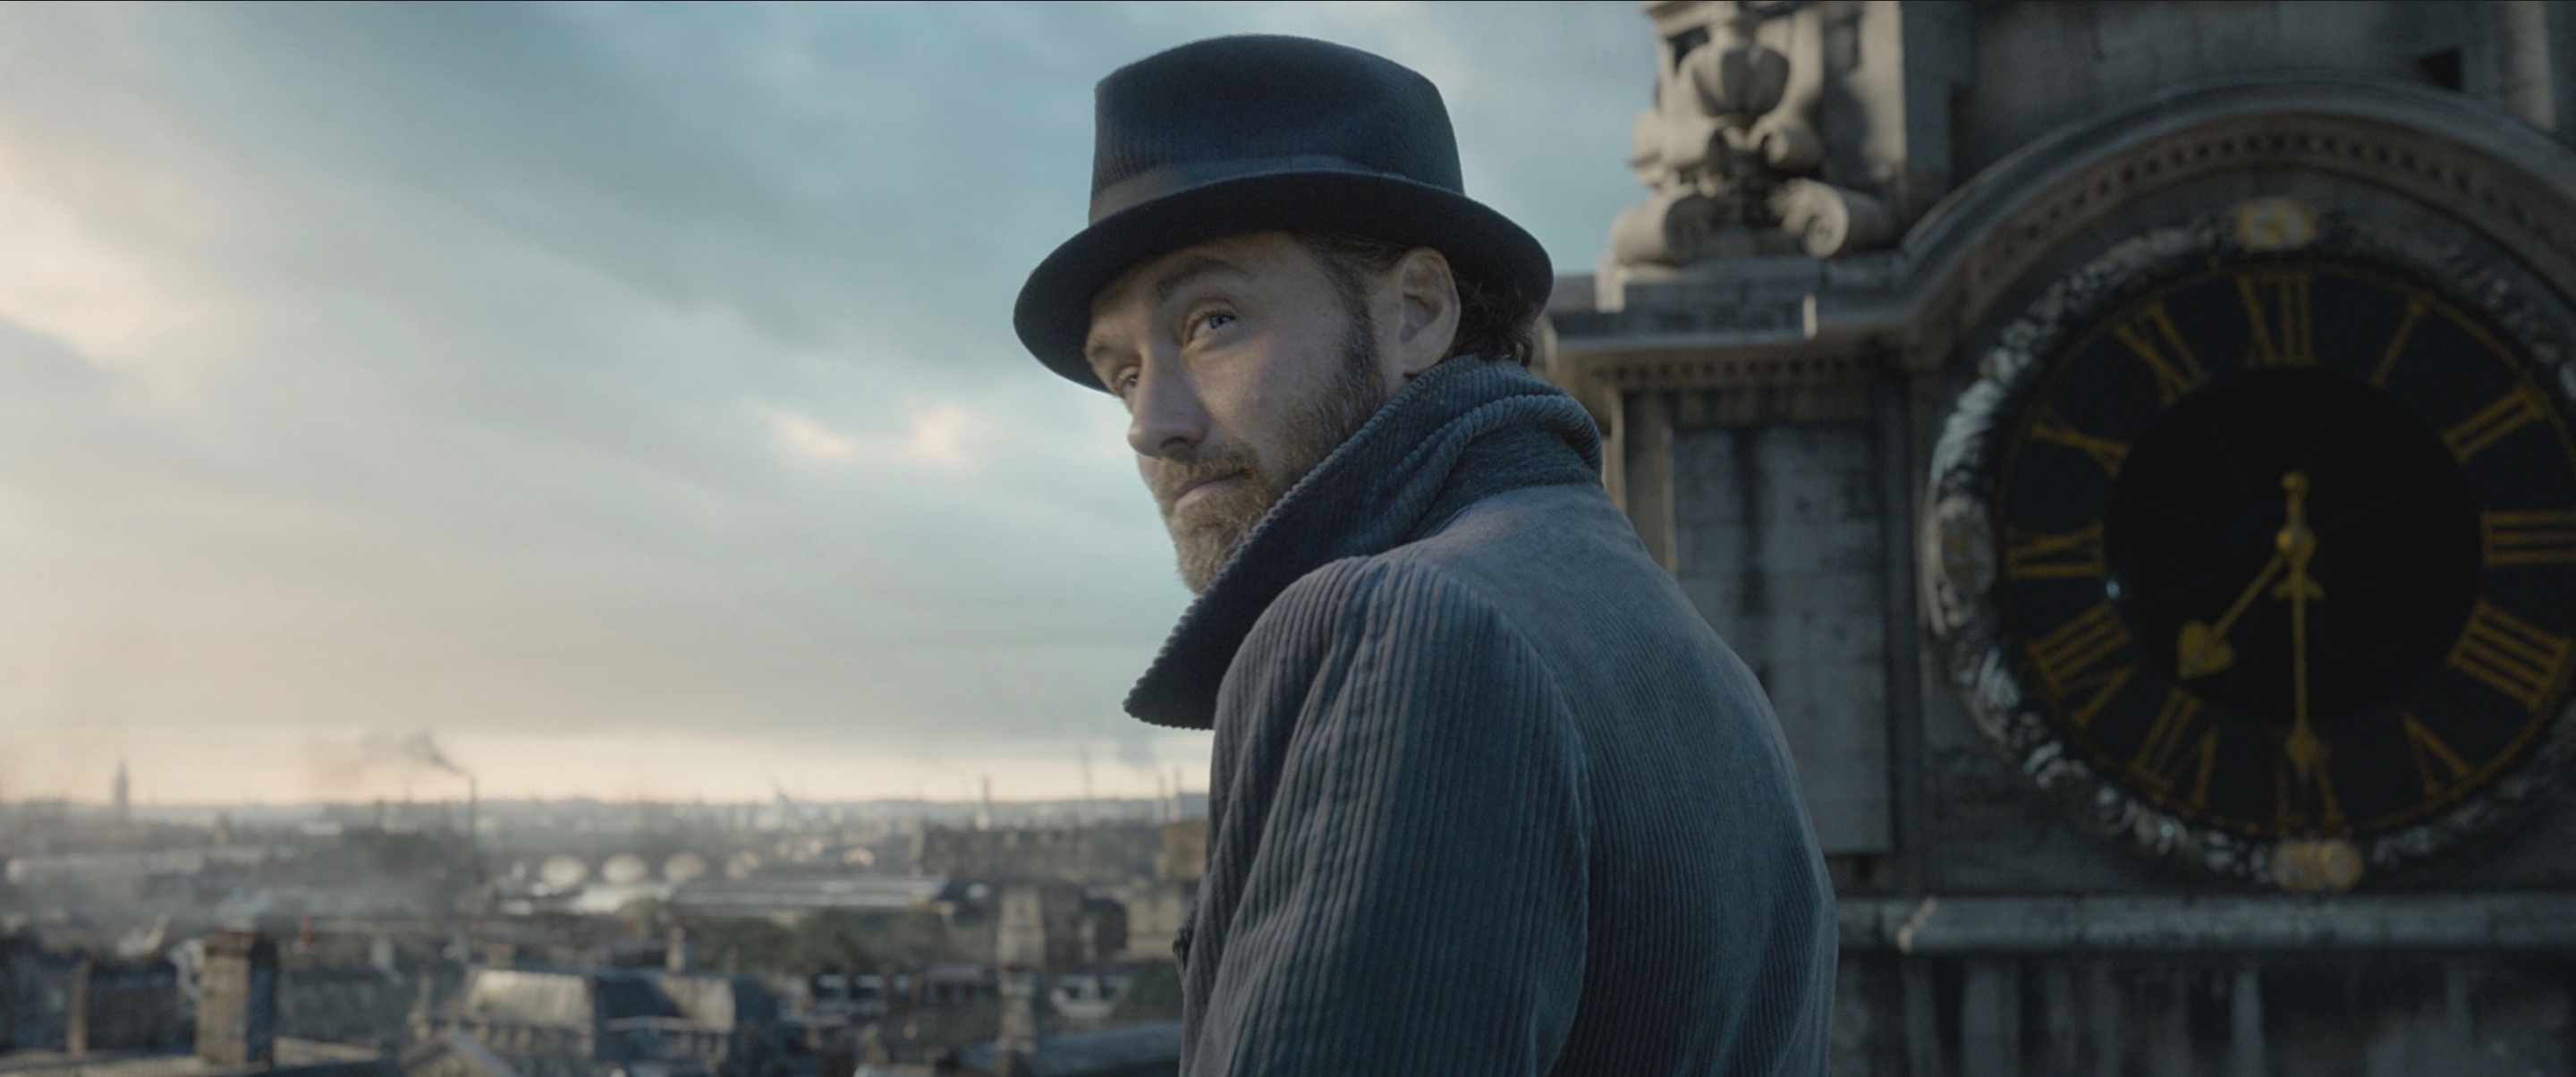 Fantastic Beasts: The Crimes Of Grindelwald' And the Canon